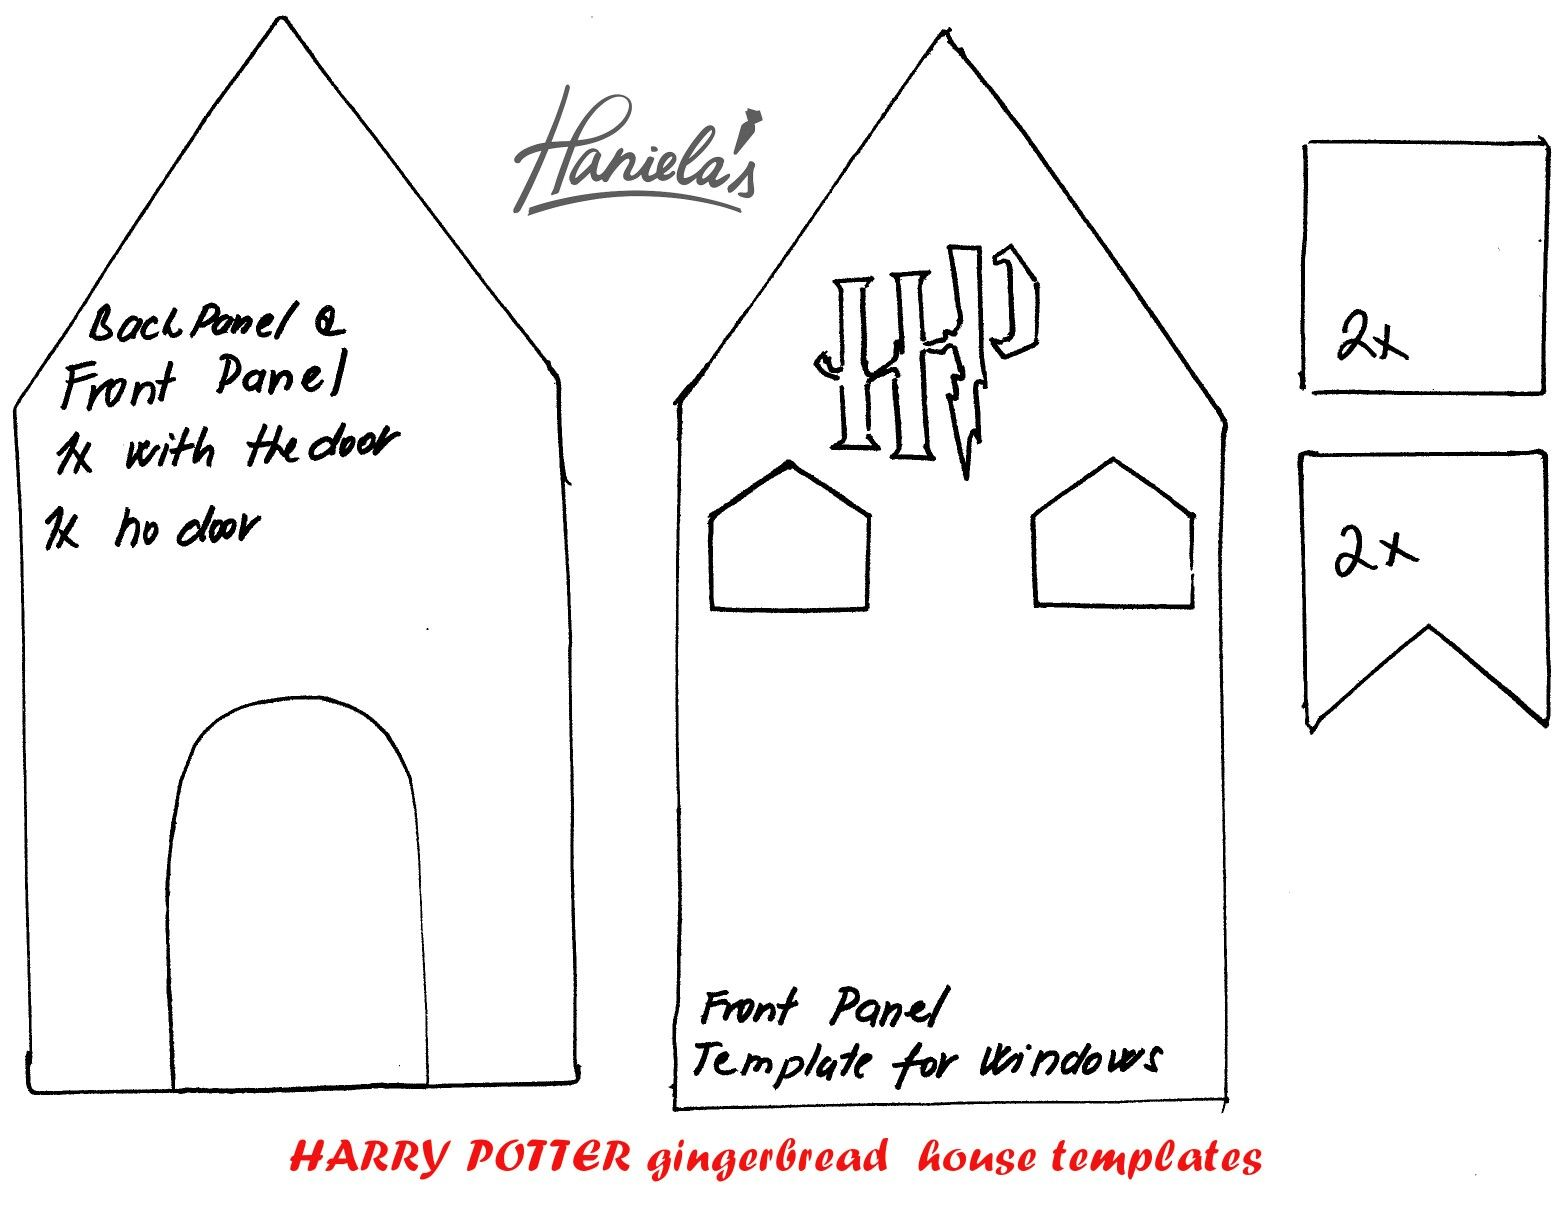 Hogwarts Gingerbread House Template 1 Of 2